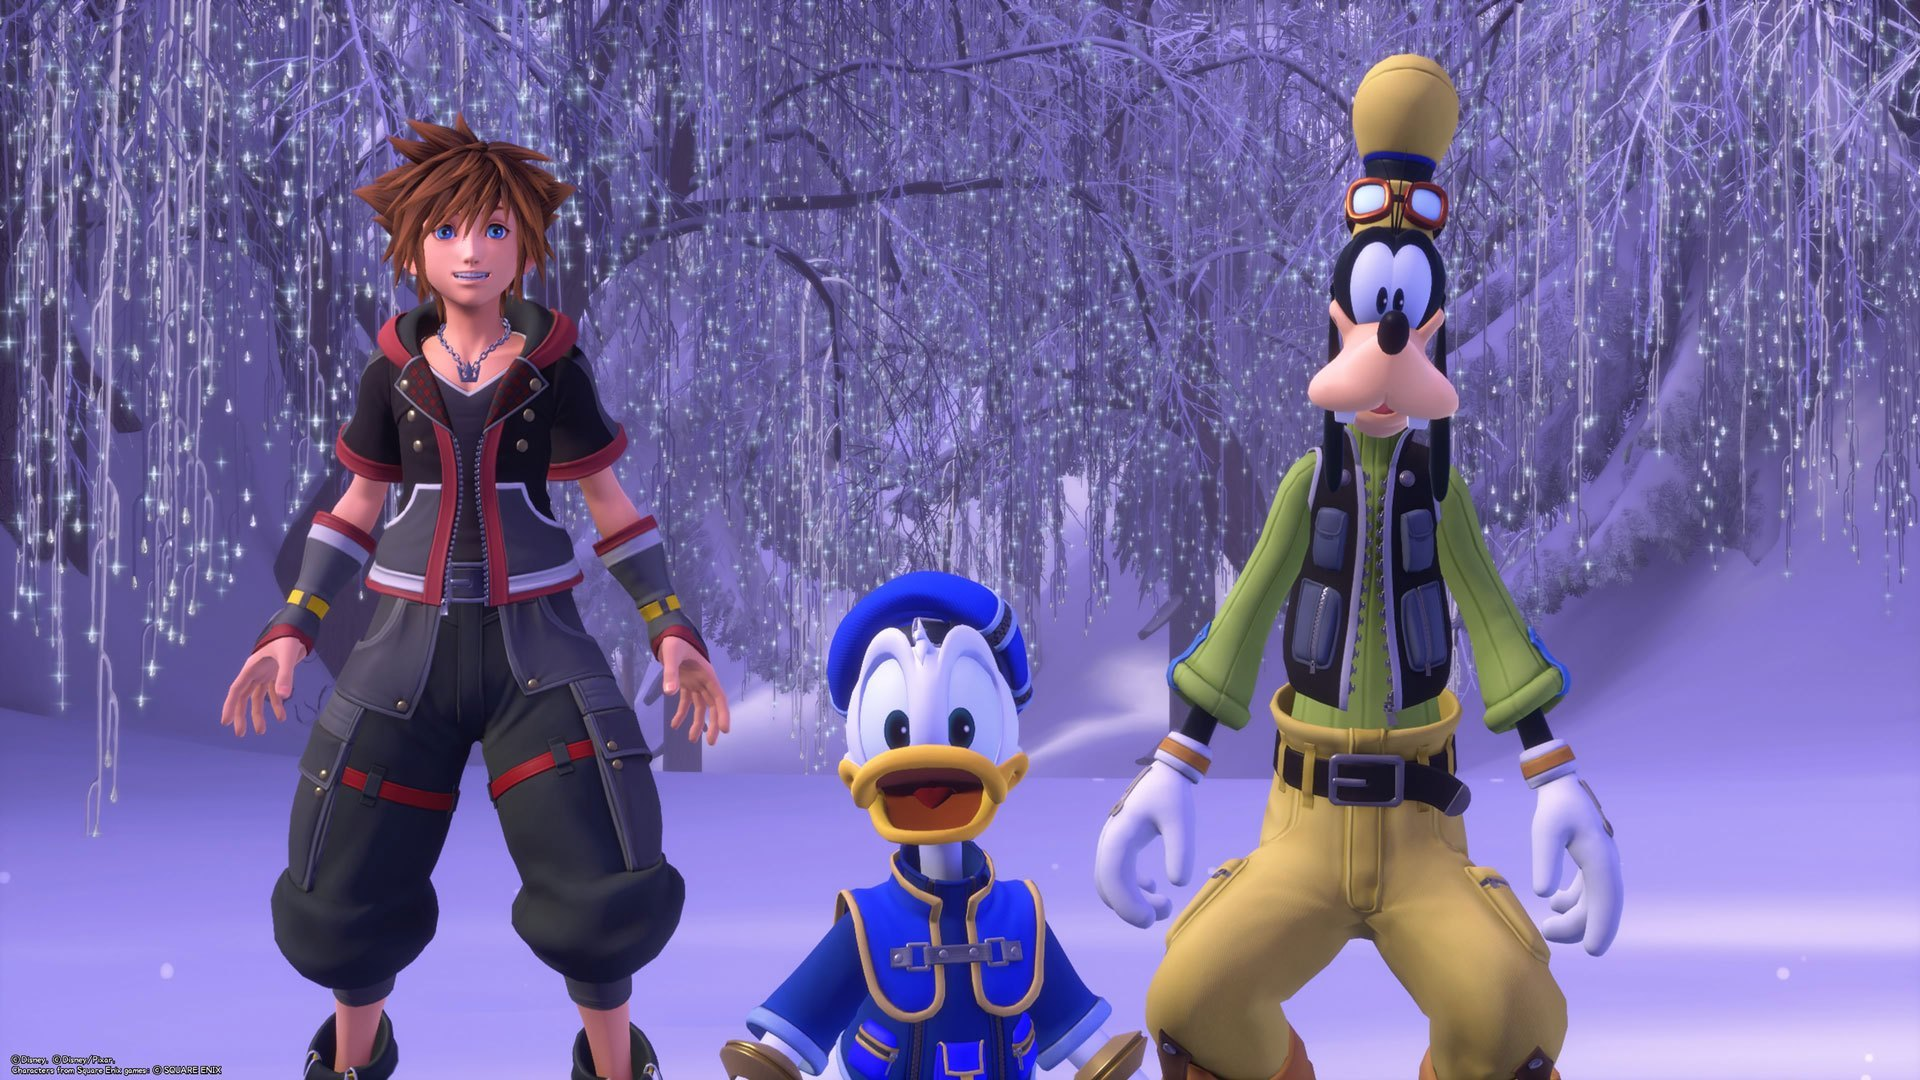 Kingdom Hearts 3 for $30, God of War for $25 and other top console game deals - VG247